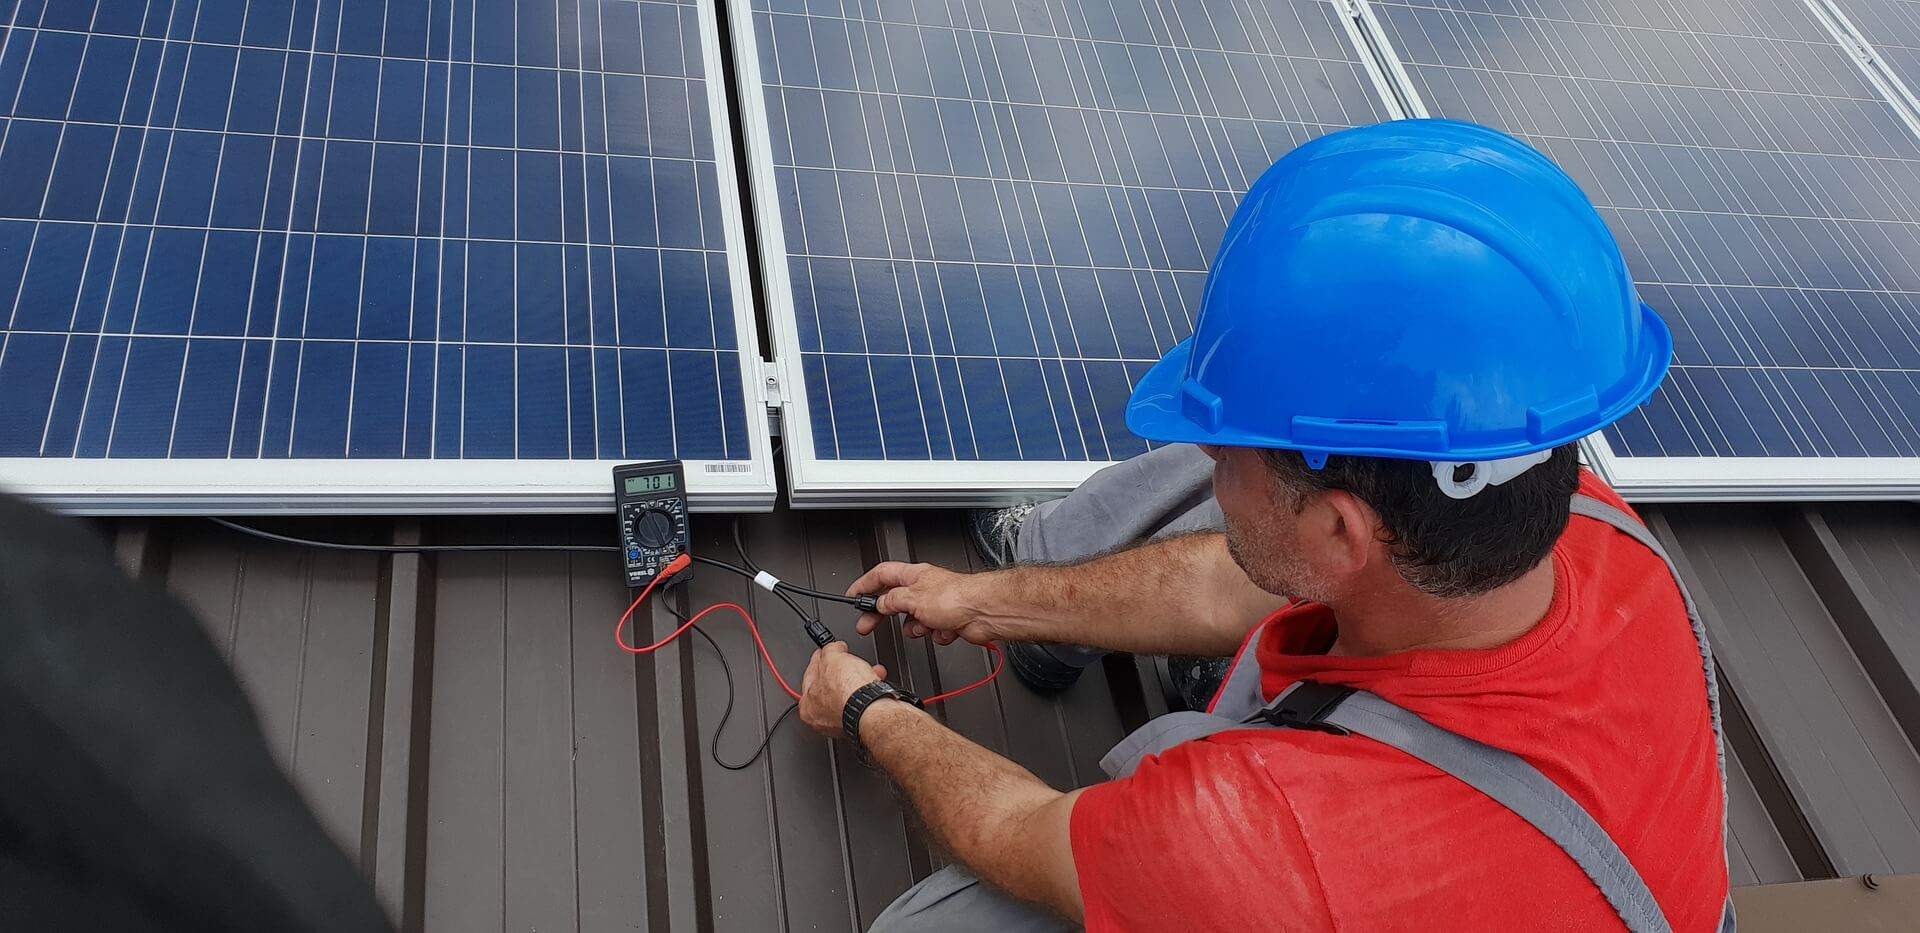 Solar Installation Cost: Choosing The Right Financing Option